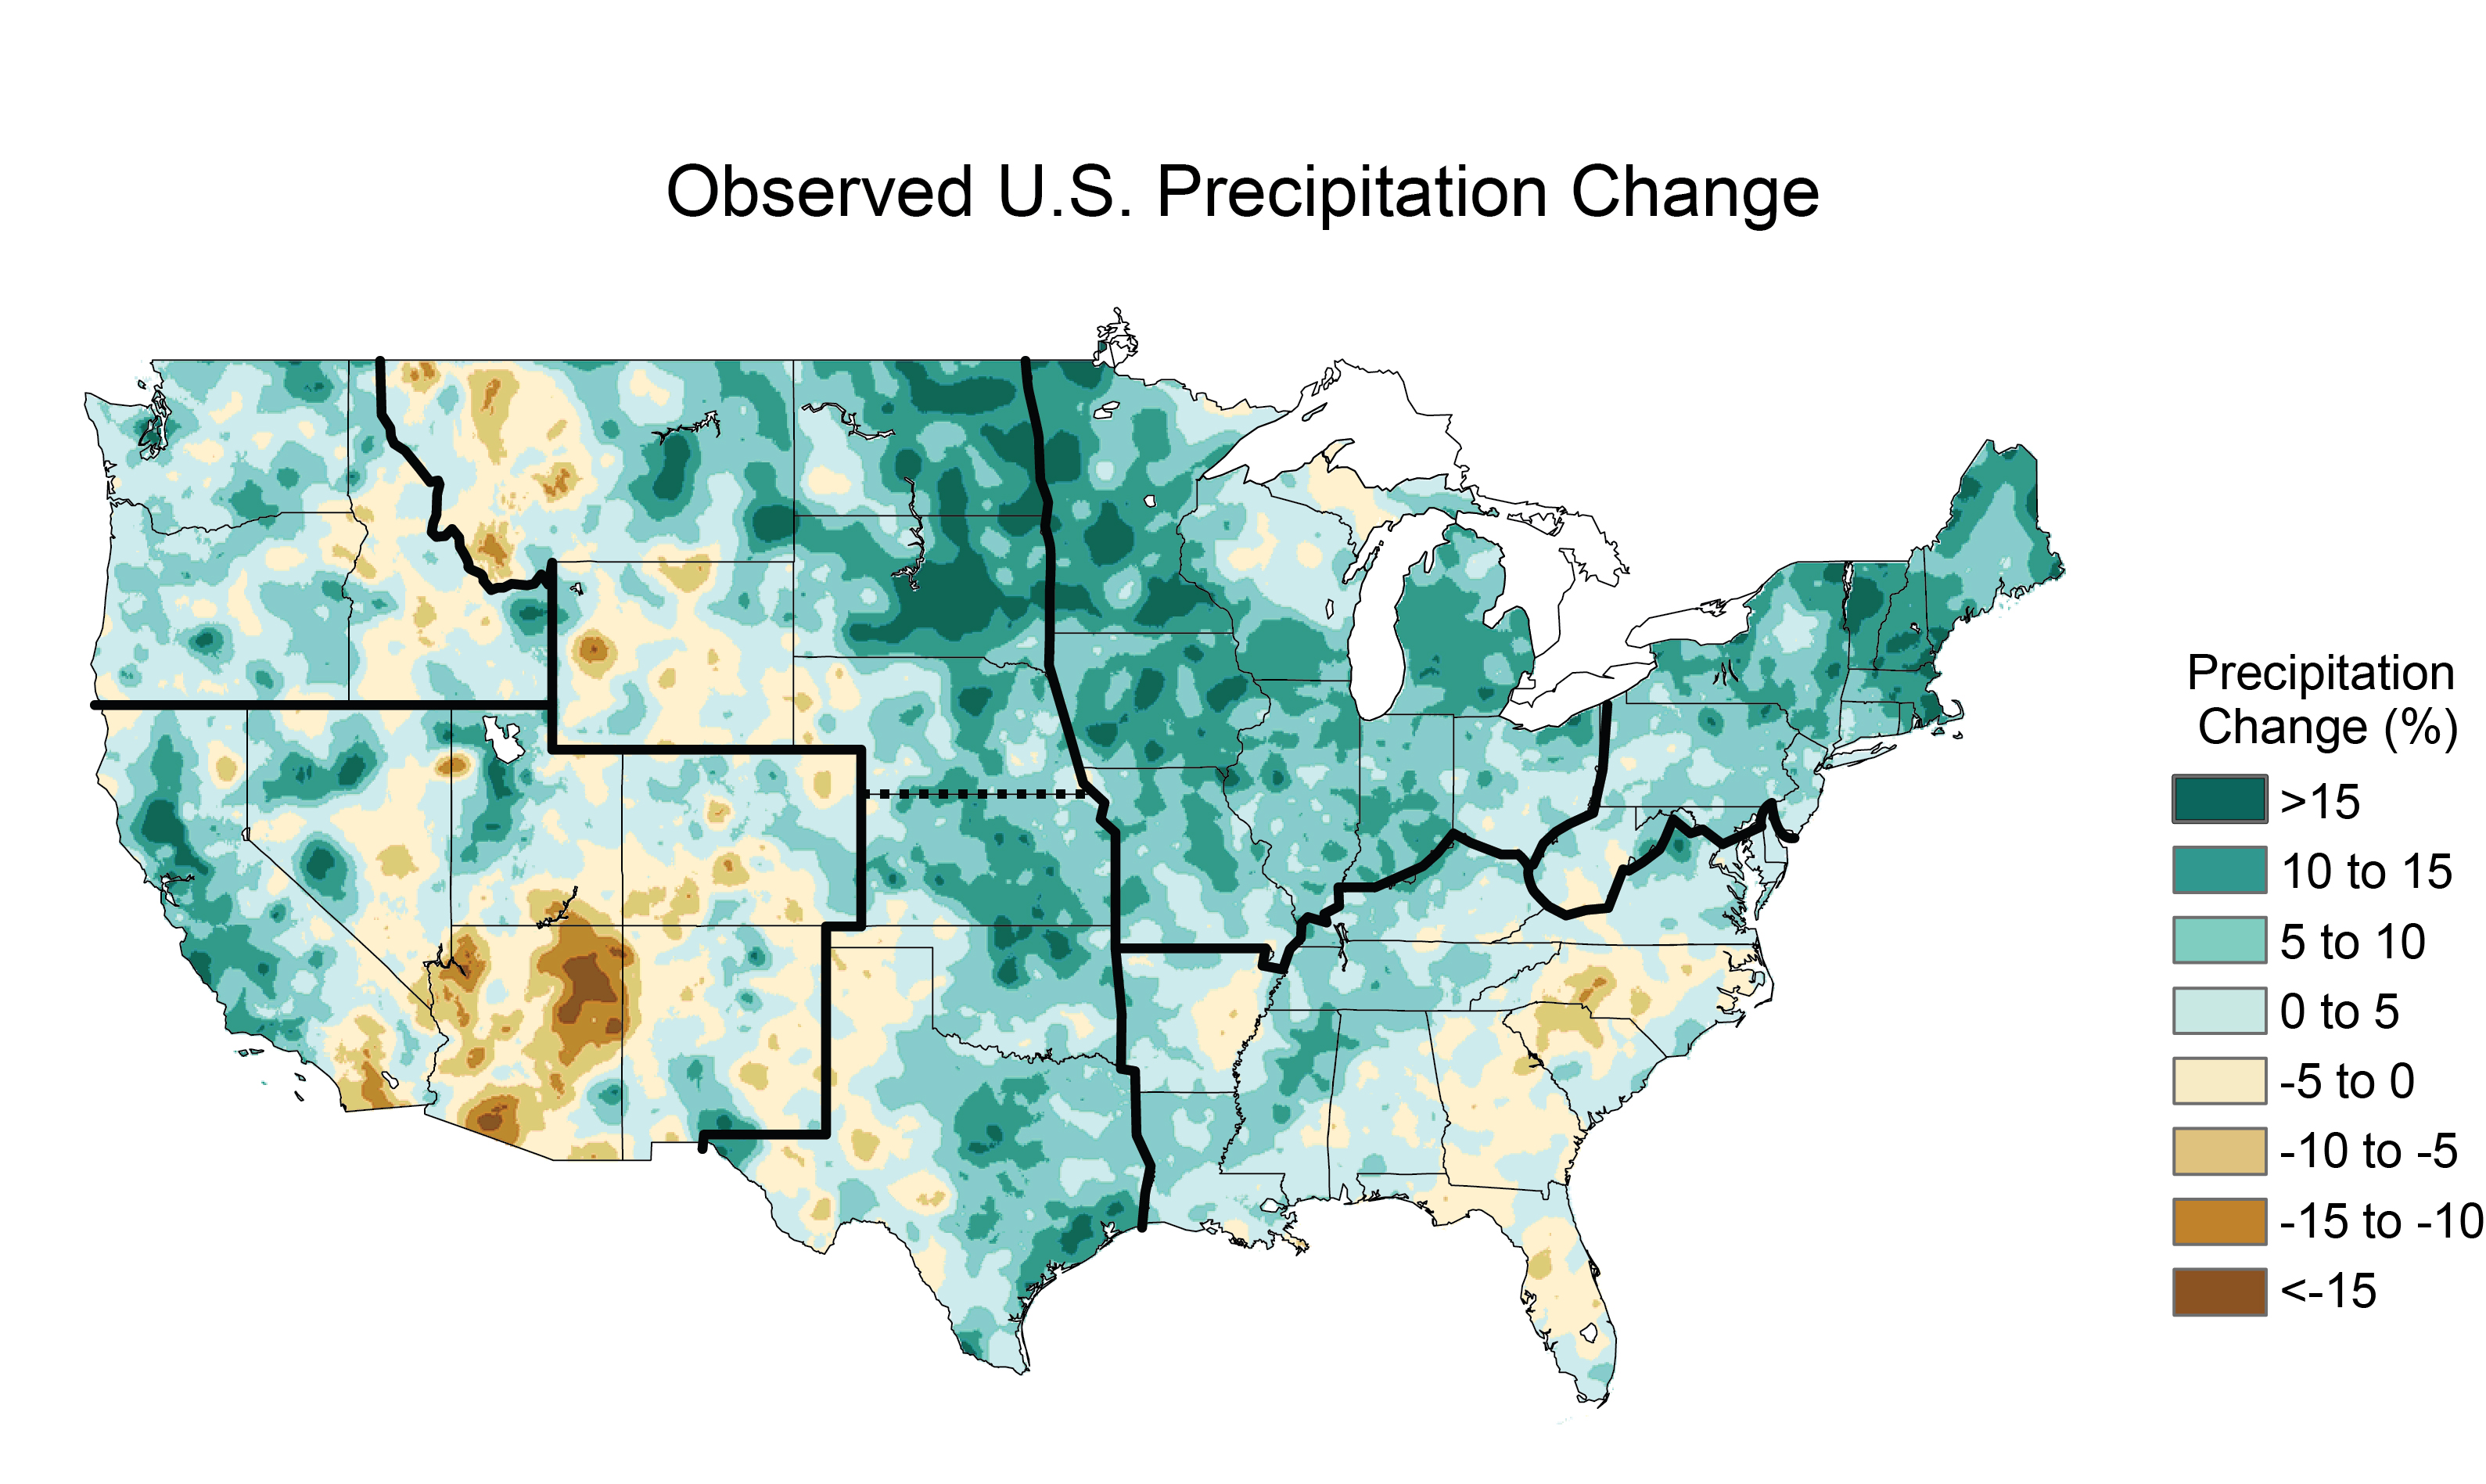 Climate Changes In The United States Image Of The Day - Us map climate